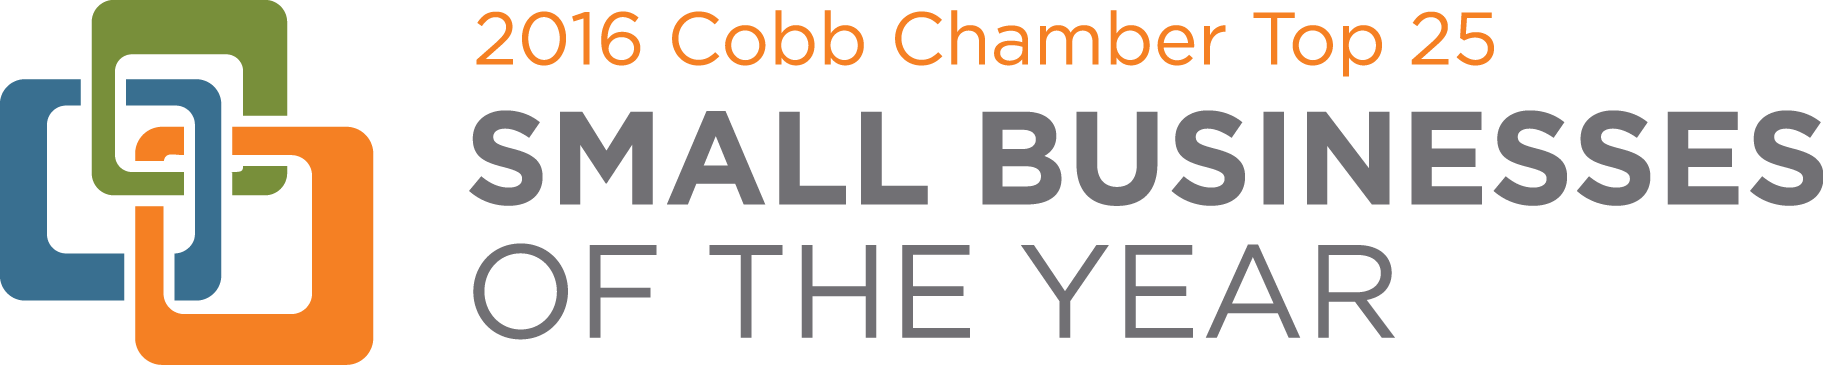 cobb county small business of the year logo